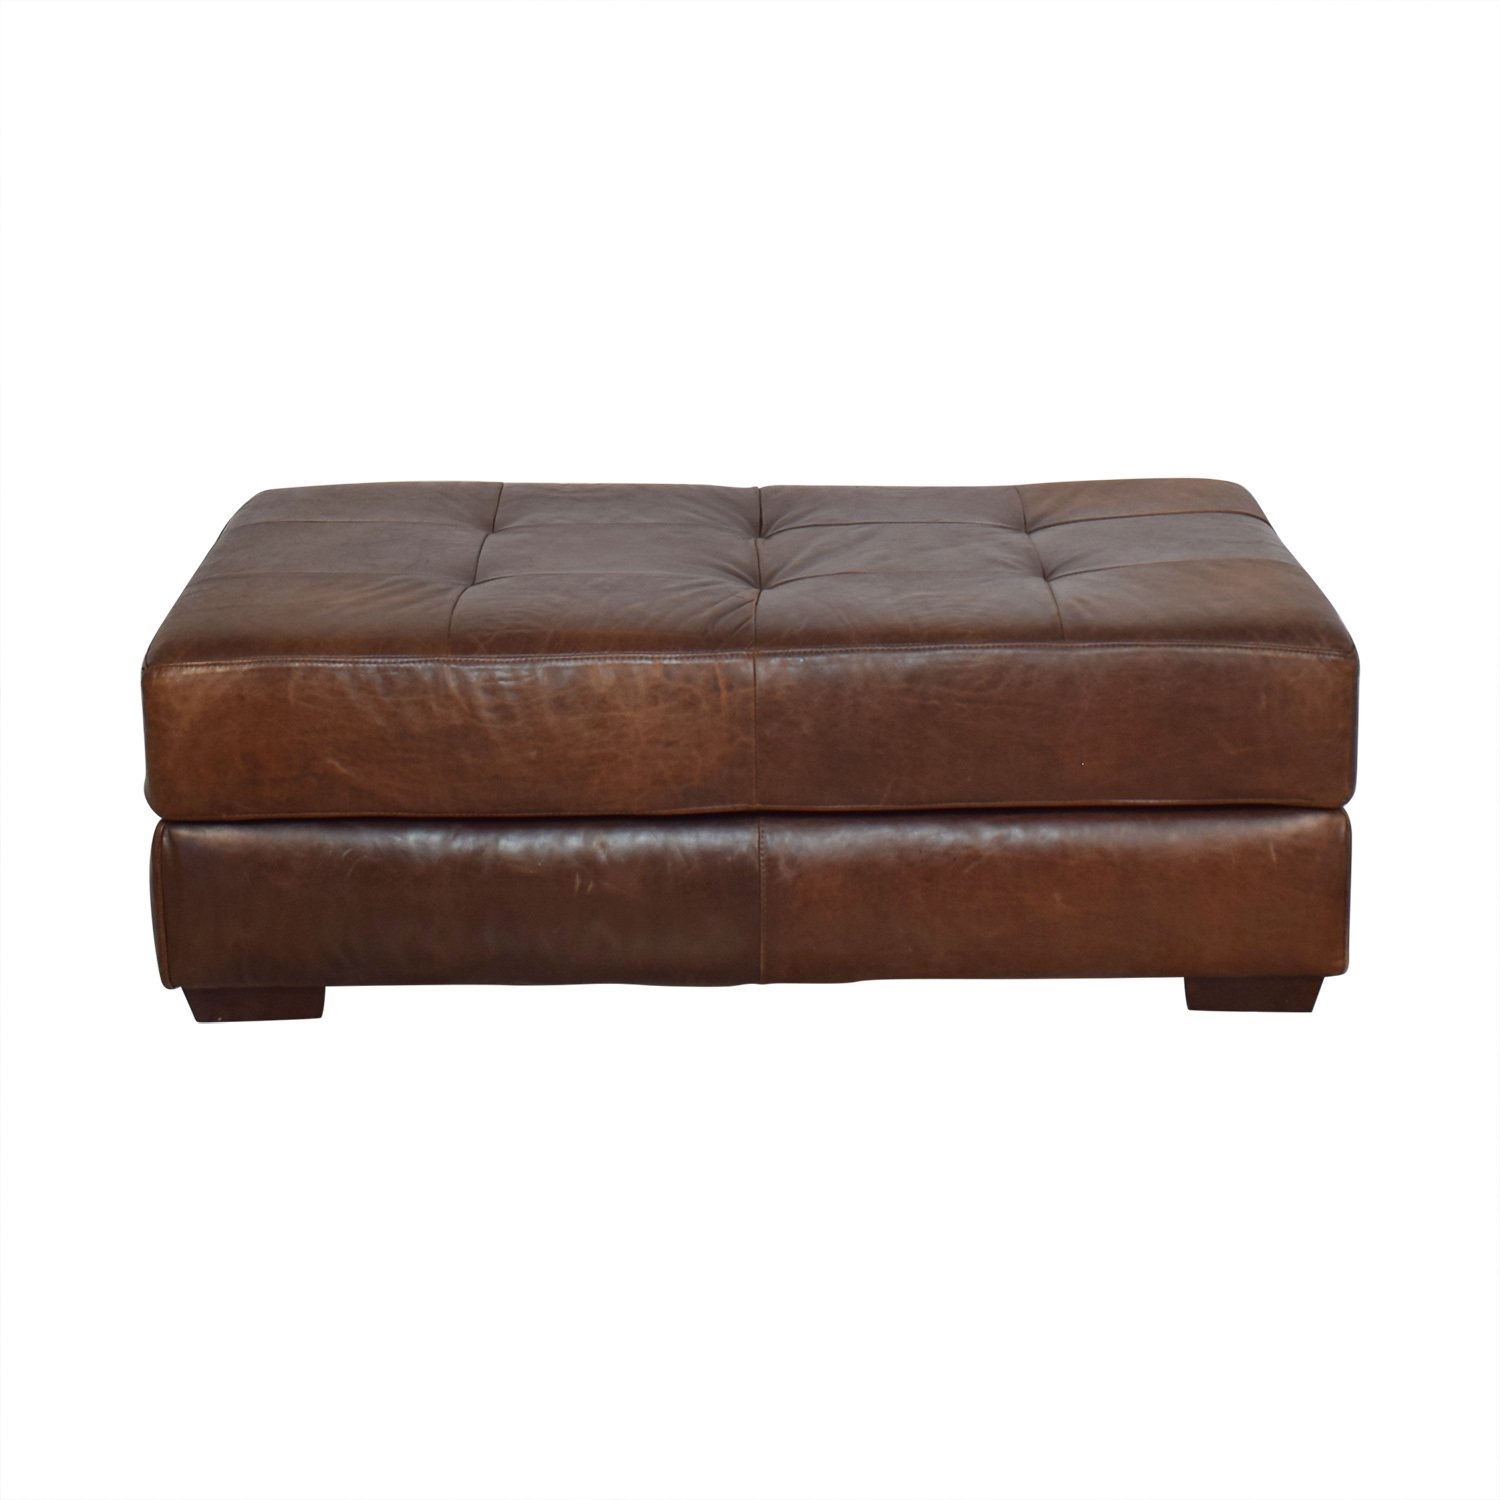 shop ABC Carpet & Home Leather Cocktail Ottoman ABC Carpet & Home Ottomans